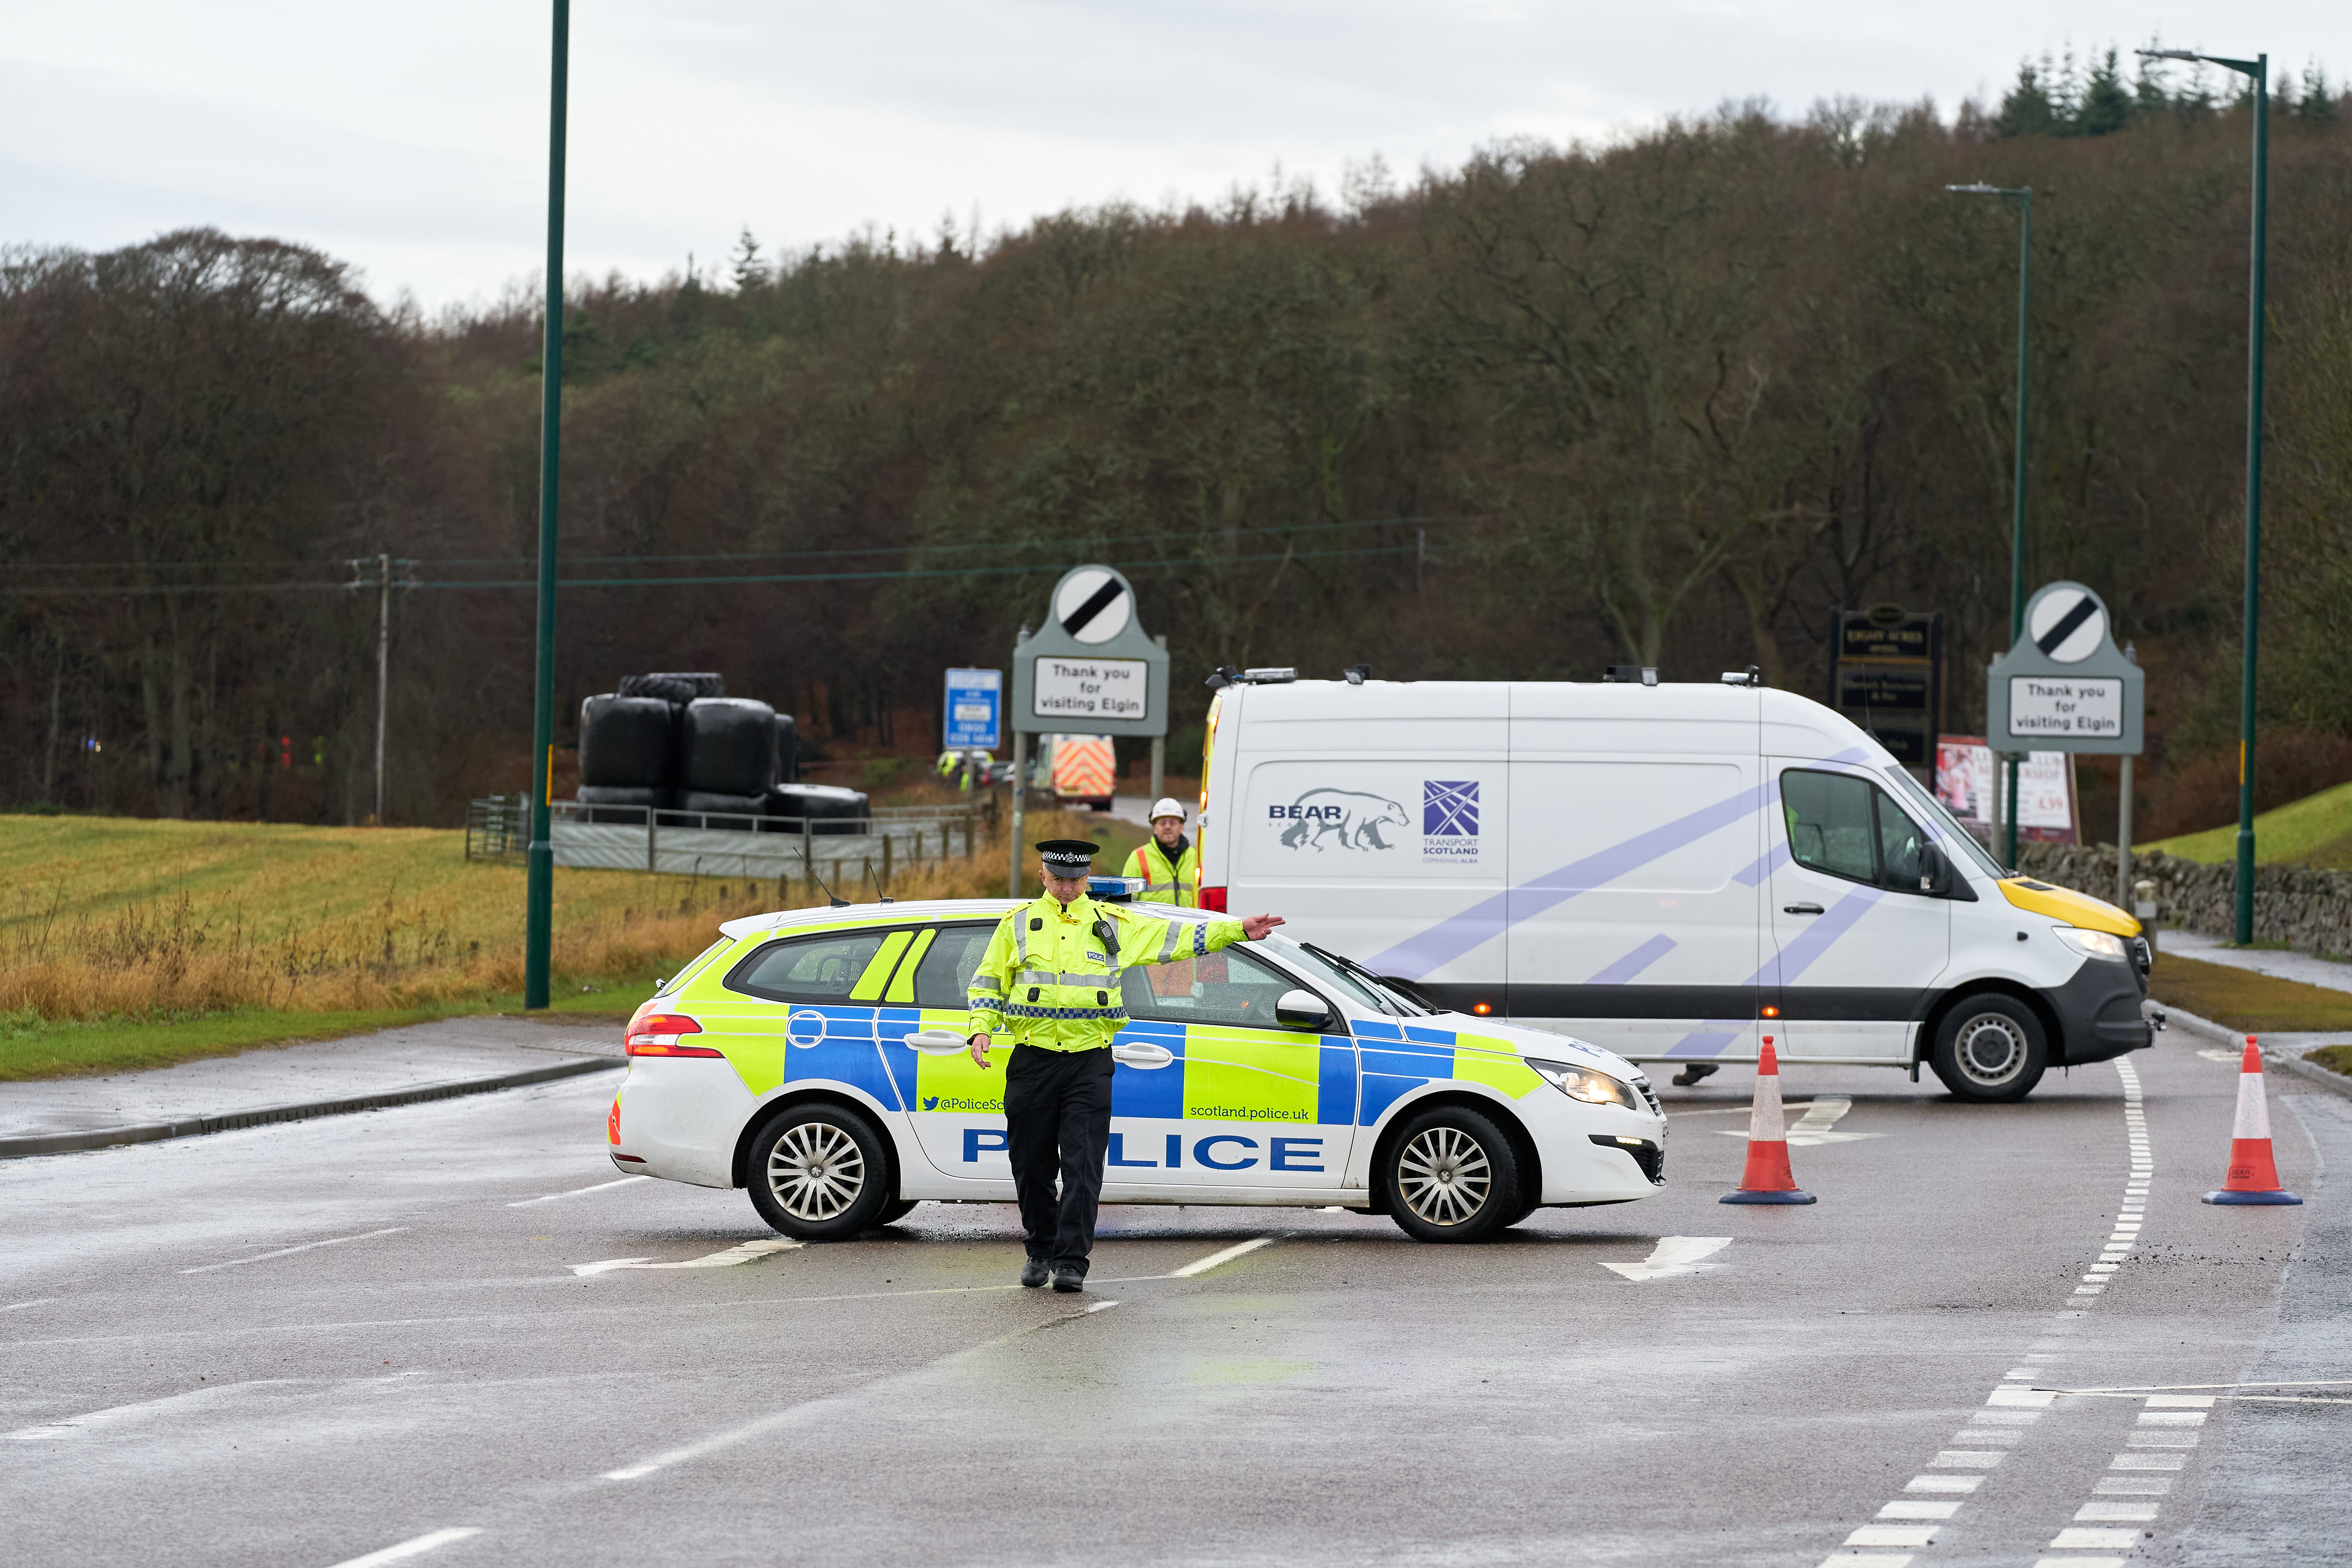 Police at the scene of the crash.